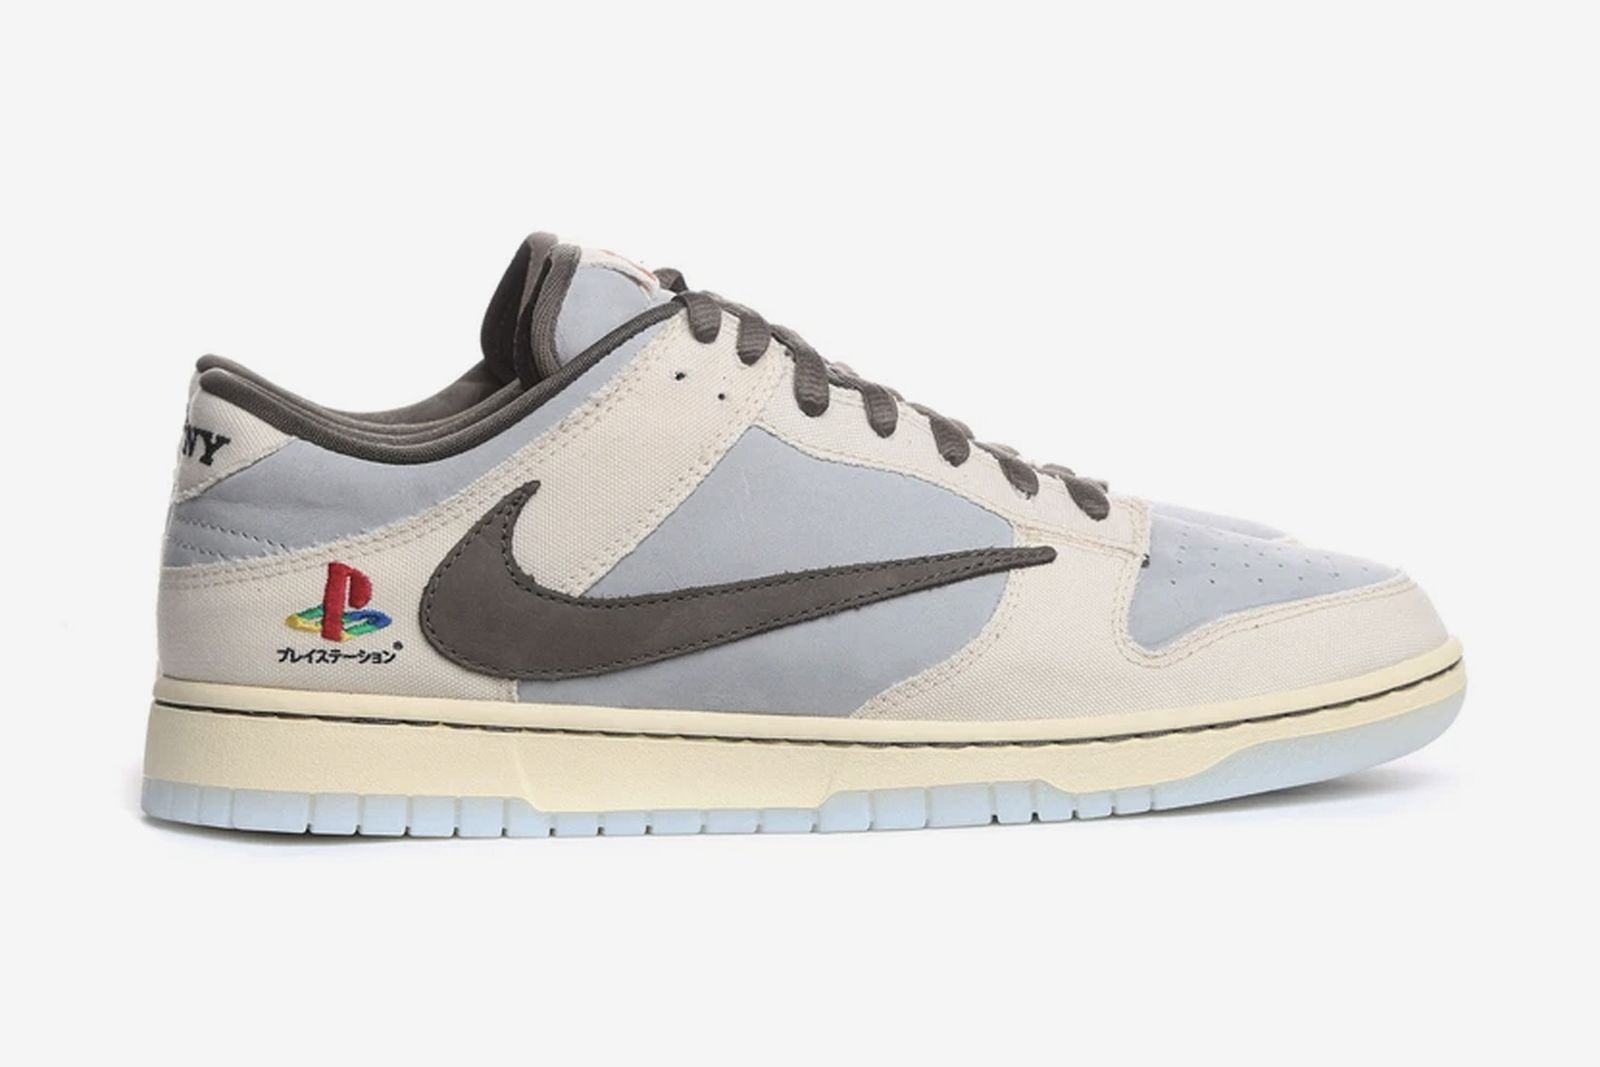 travis-scott-playstation-nike-dunk-low-release-date-price-04